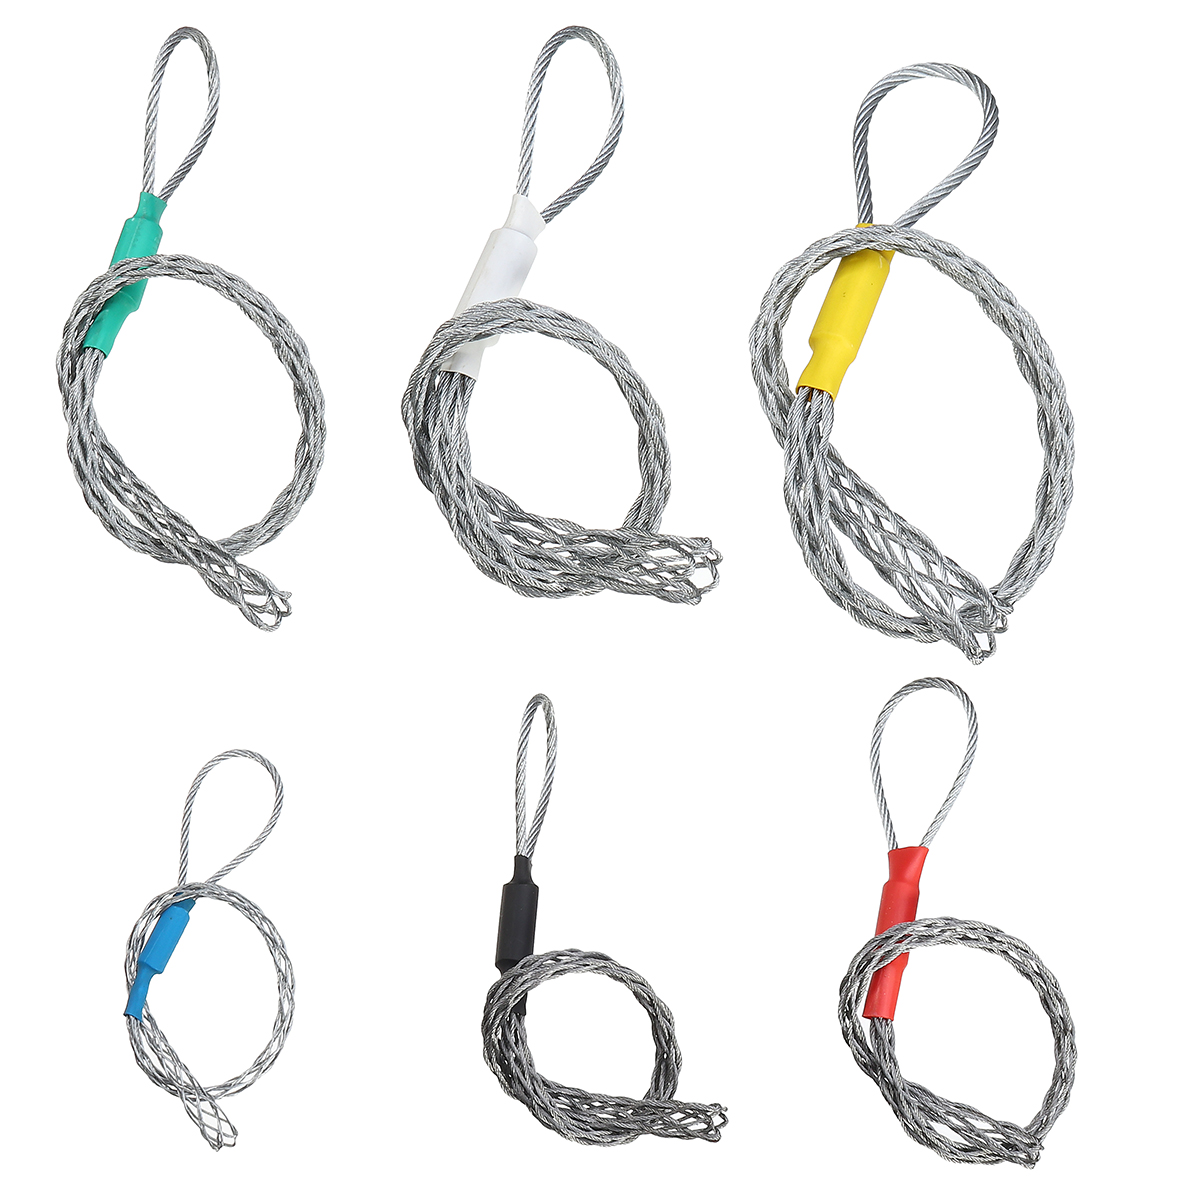 High Quality Stainless Steel Cable Pulling Socks Telstra